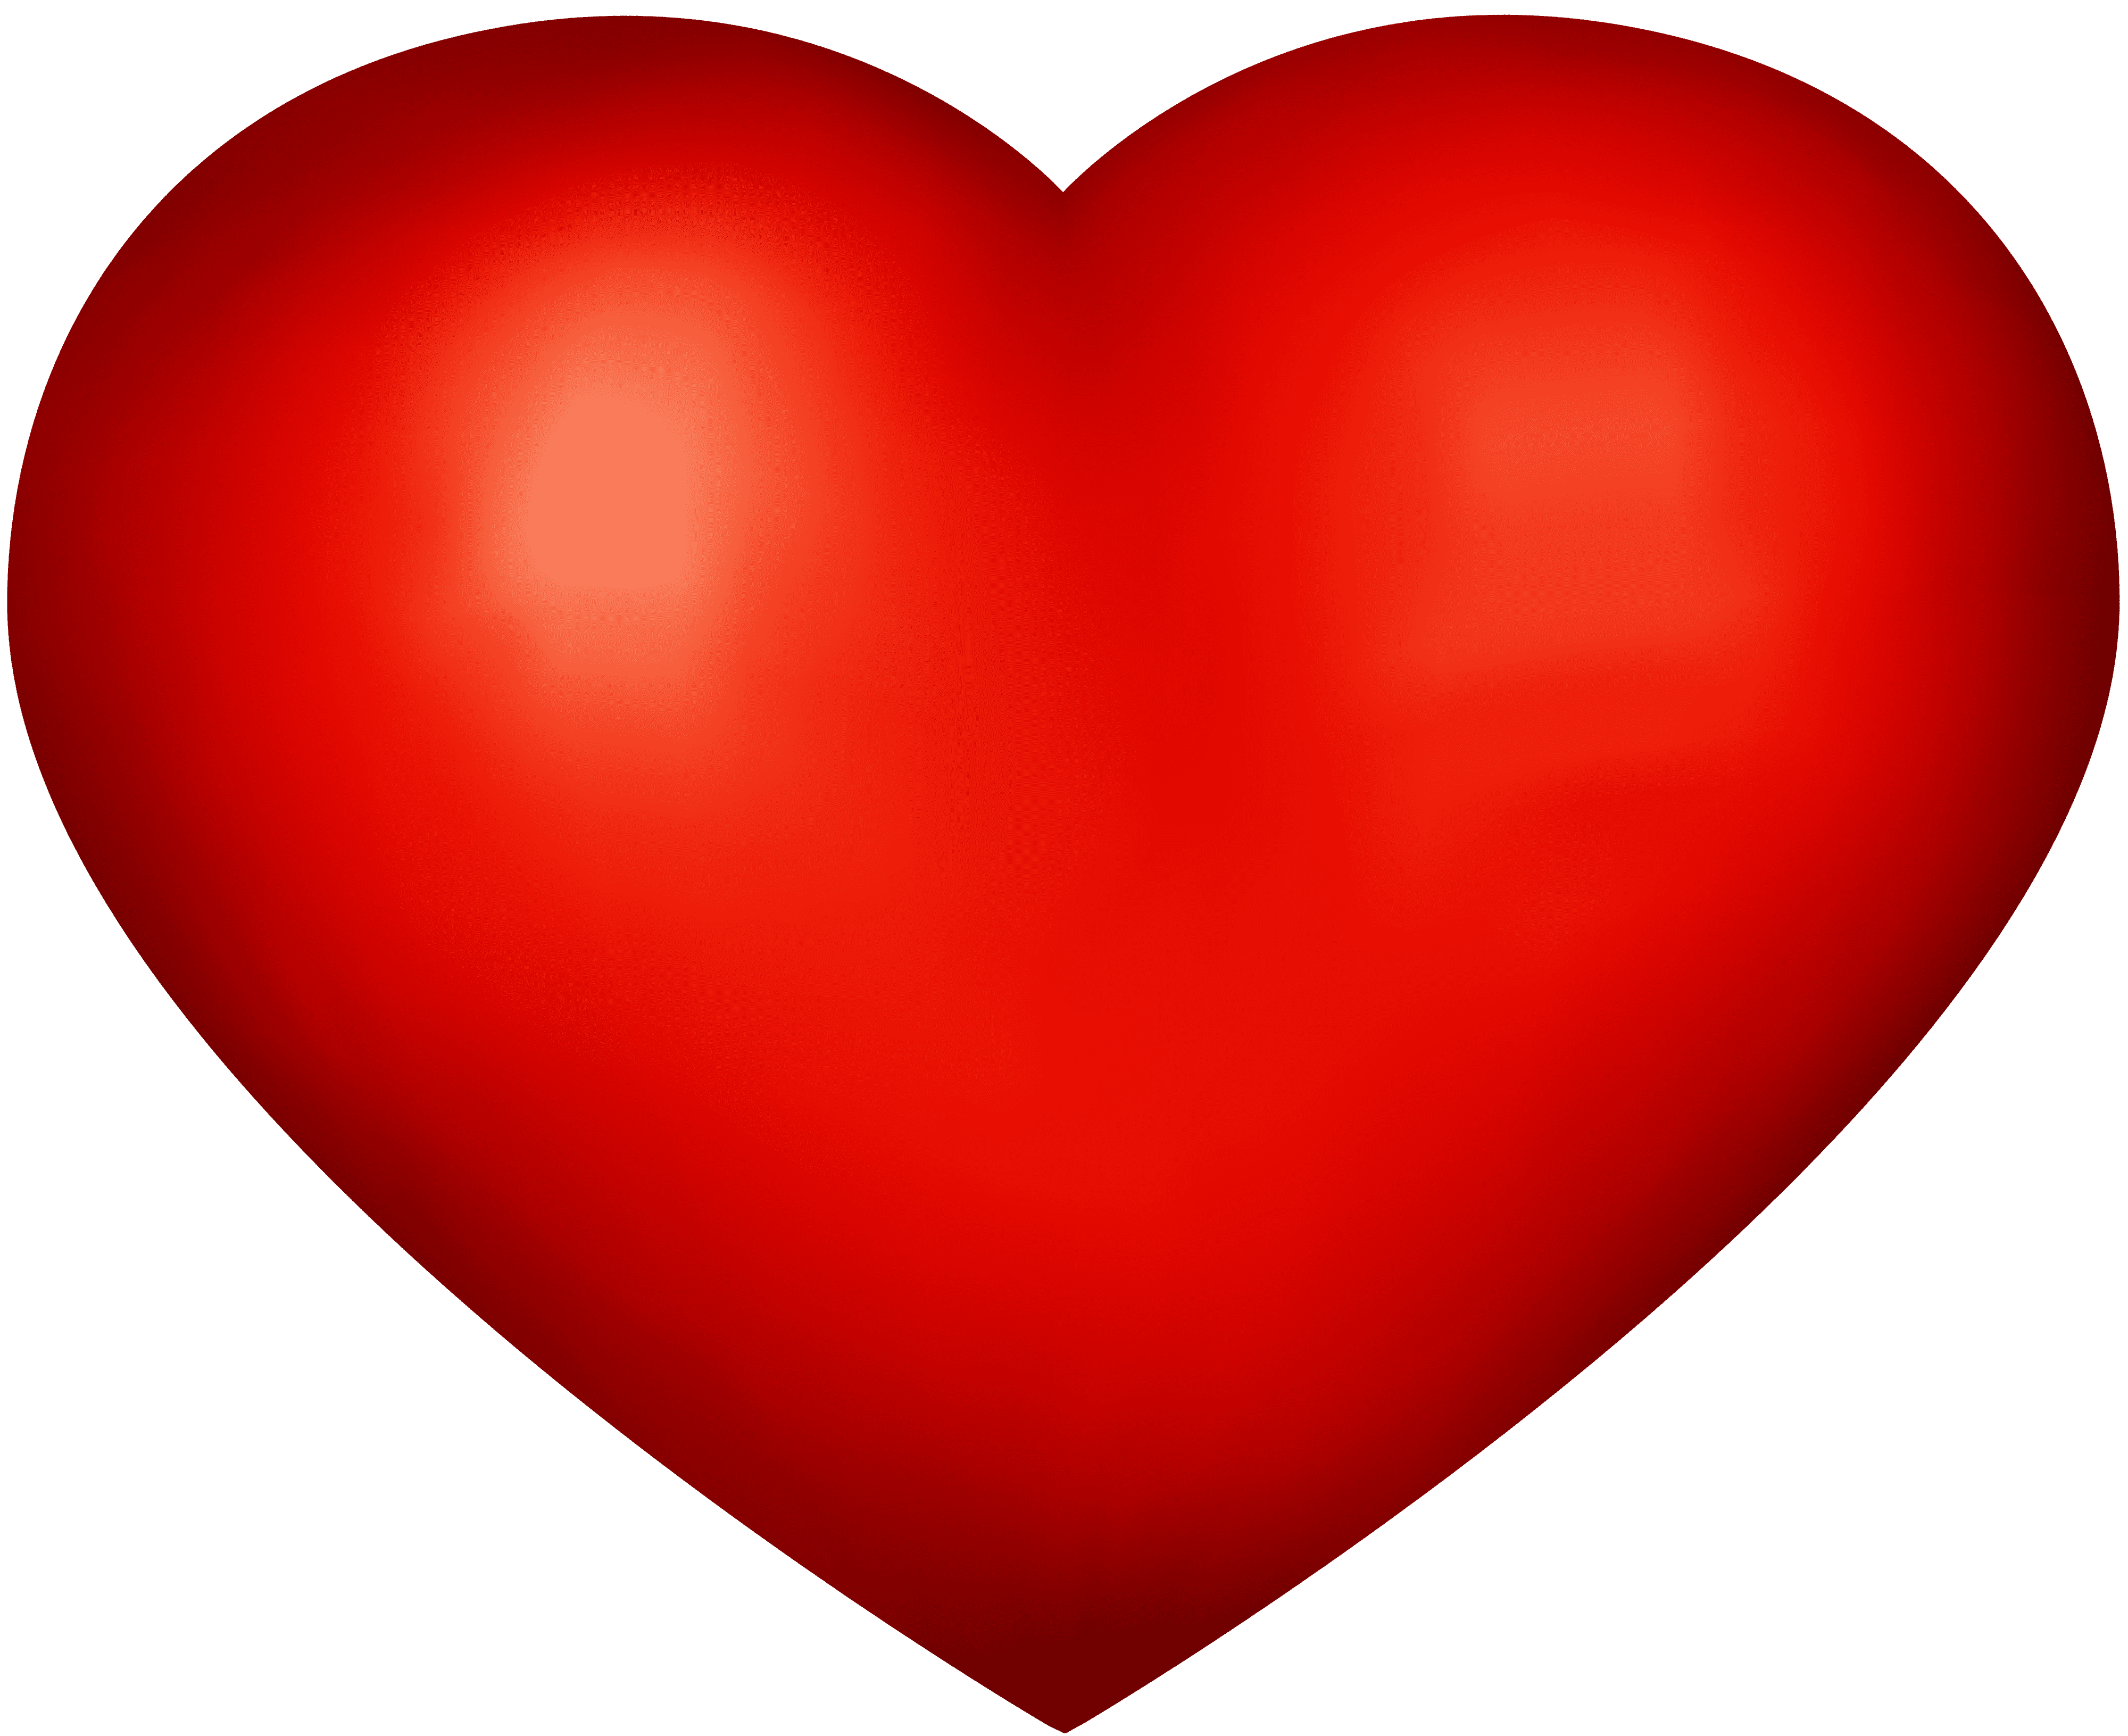 Heart Red Png Clip Art Image